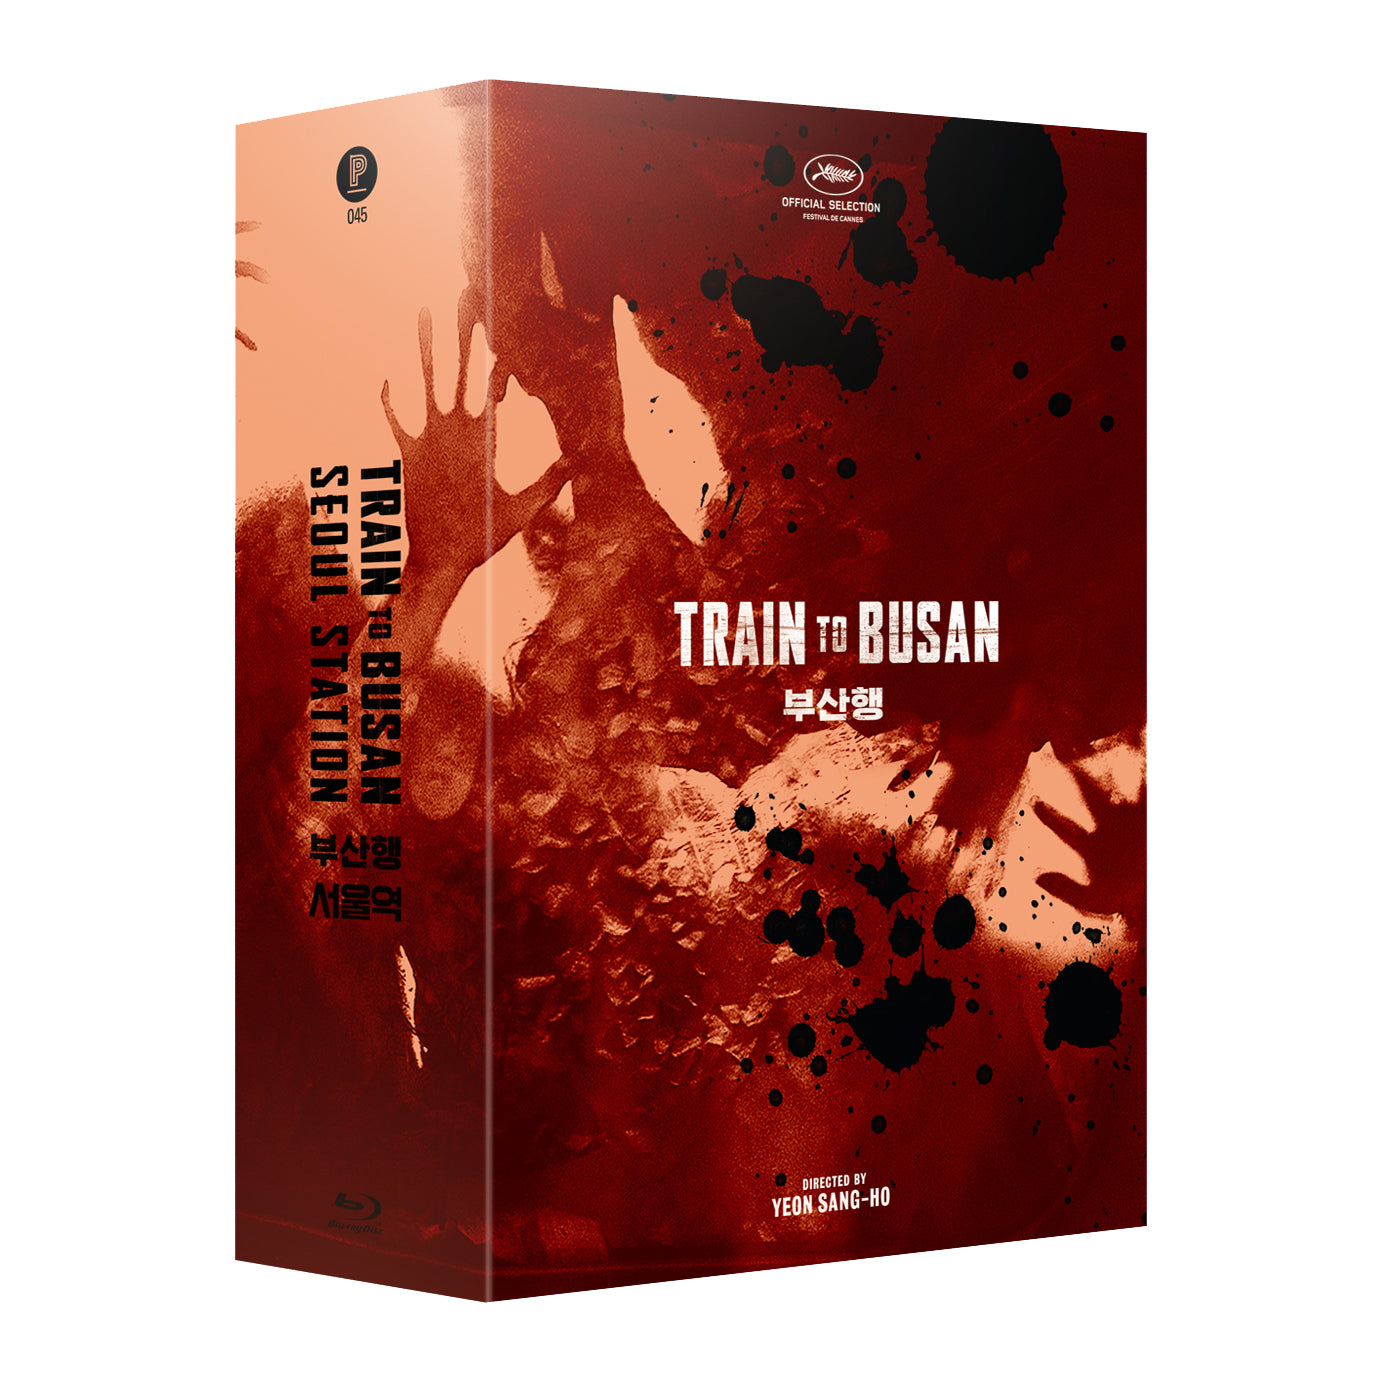 Train to Busan × Seoul Station Steelbook: Triple Pack (Full Slip A+B+C)